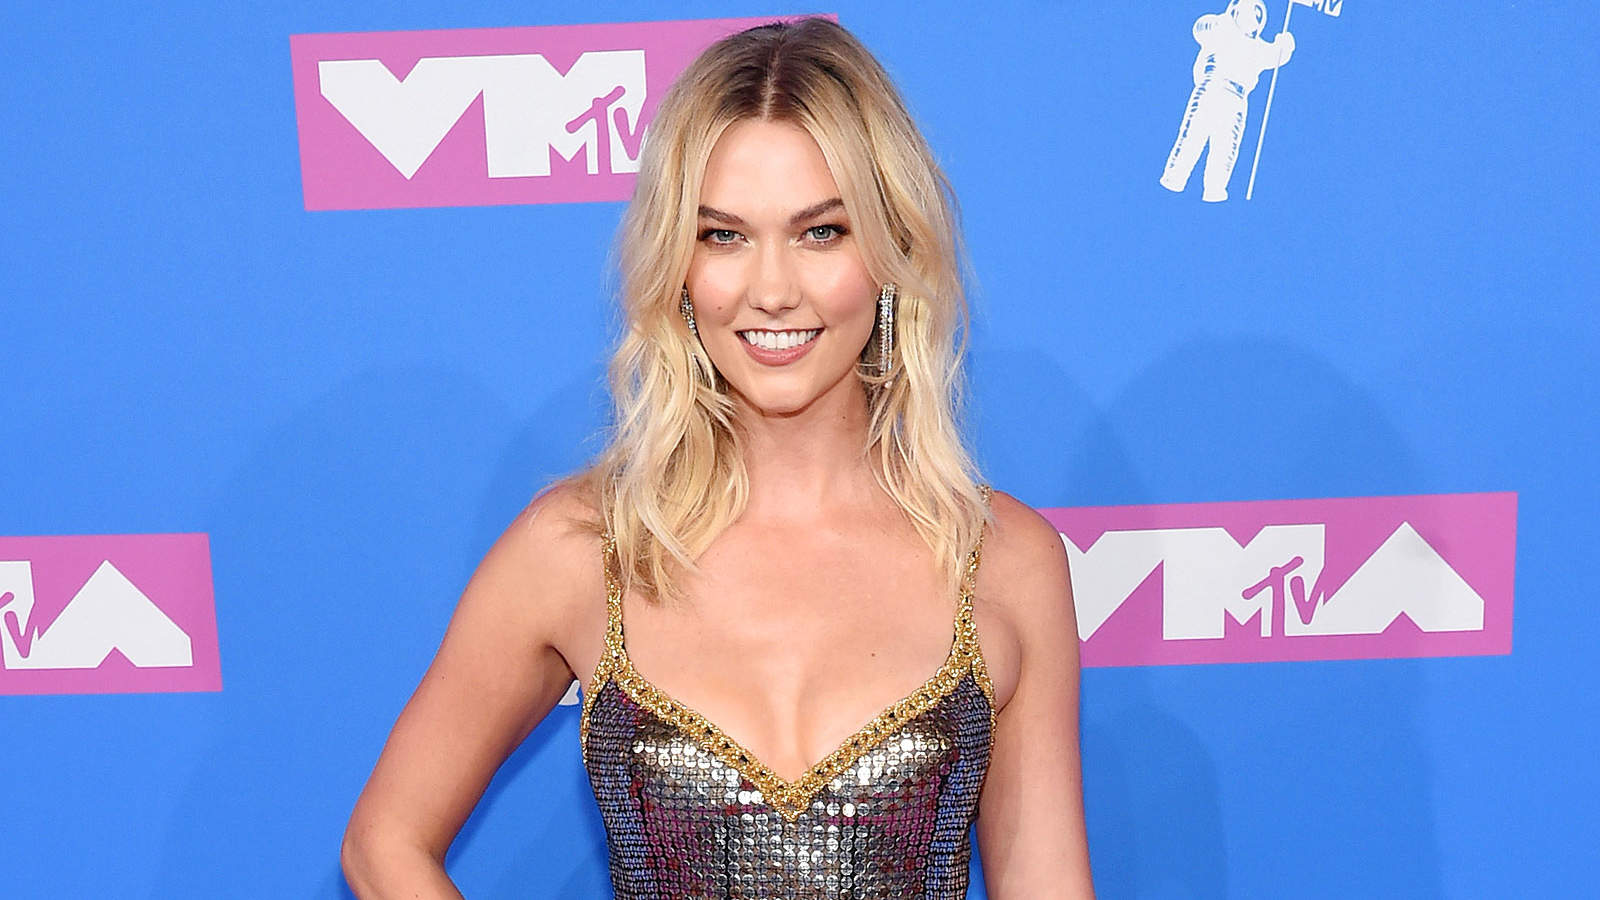 Karlie Kloss Lost Modeling Jobs After Going on Birth Control: 'My Body Became More Womanly'